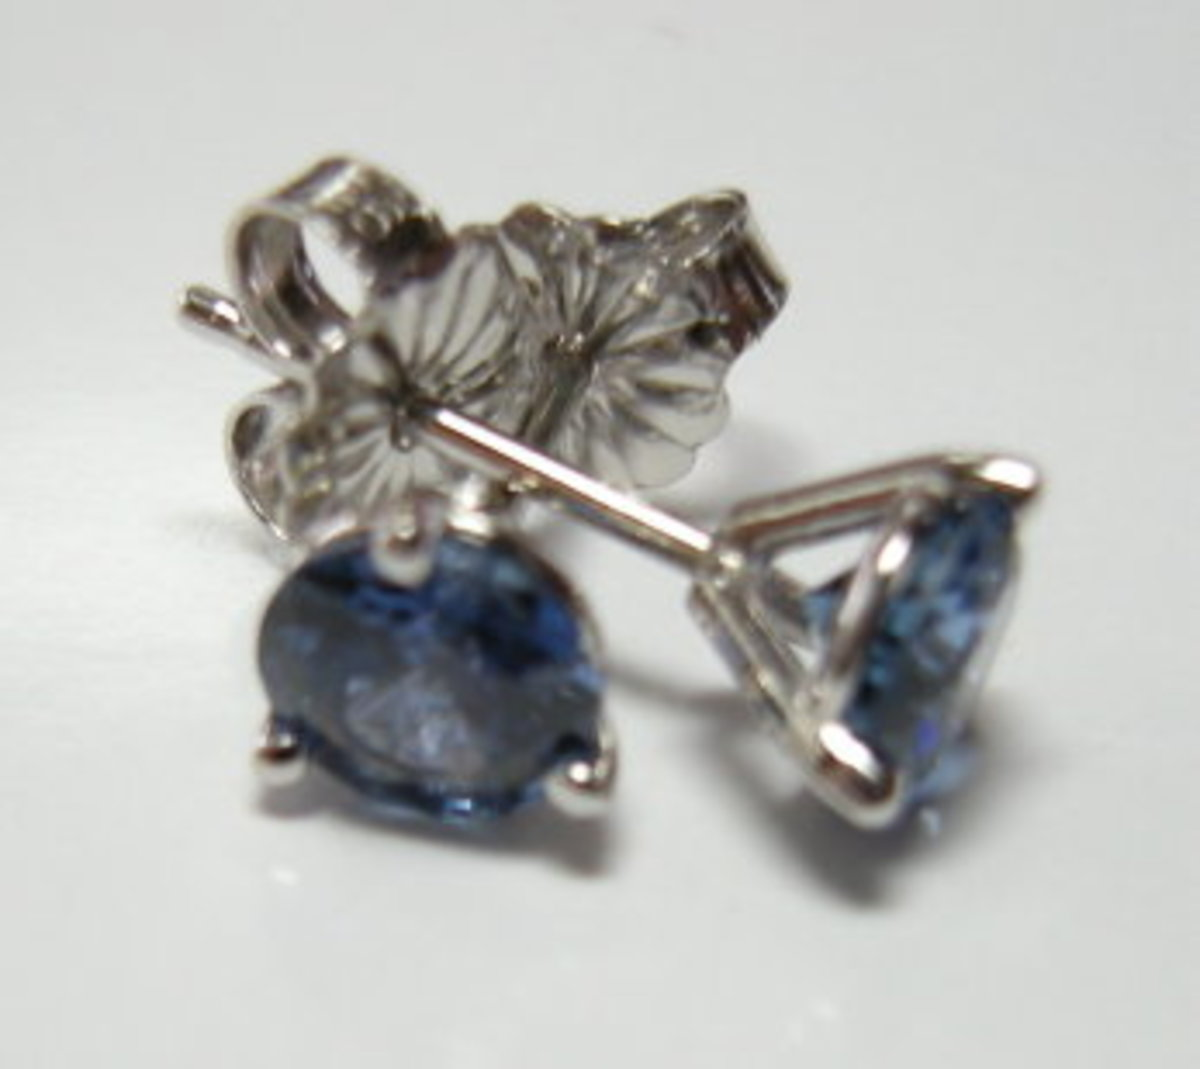 These Yogo Sapphires are set in Platinum post and clutch 'martini' style earrings. The wearer is sensitive to white gold.